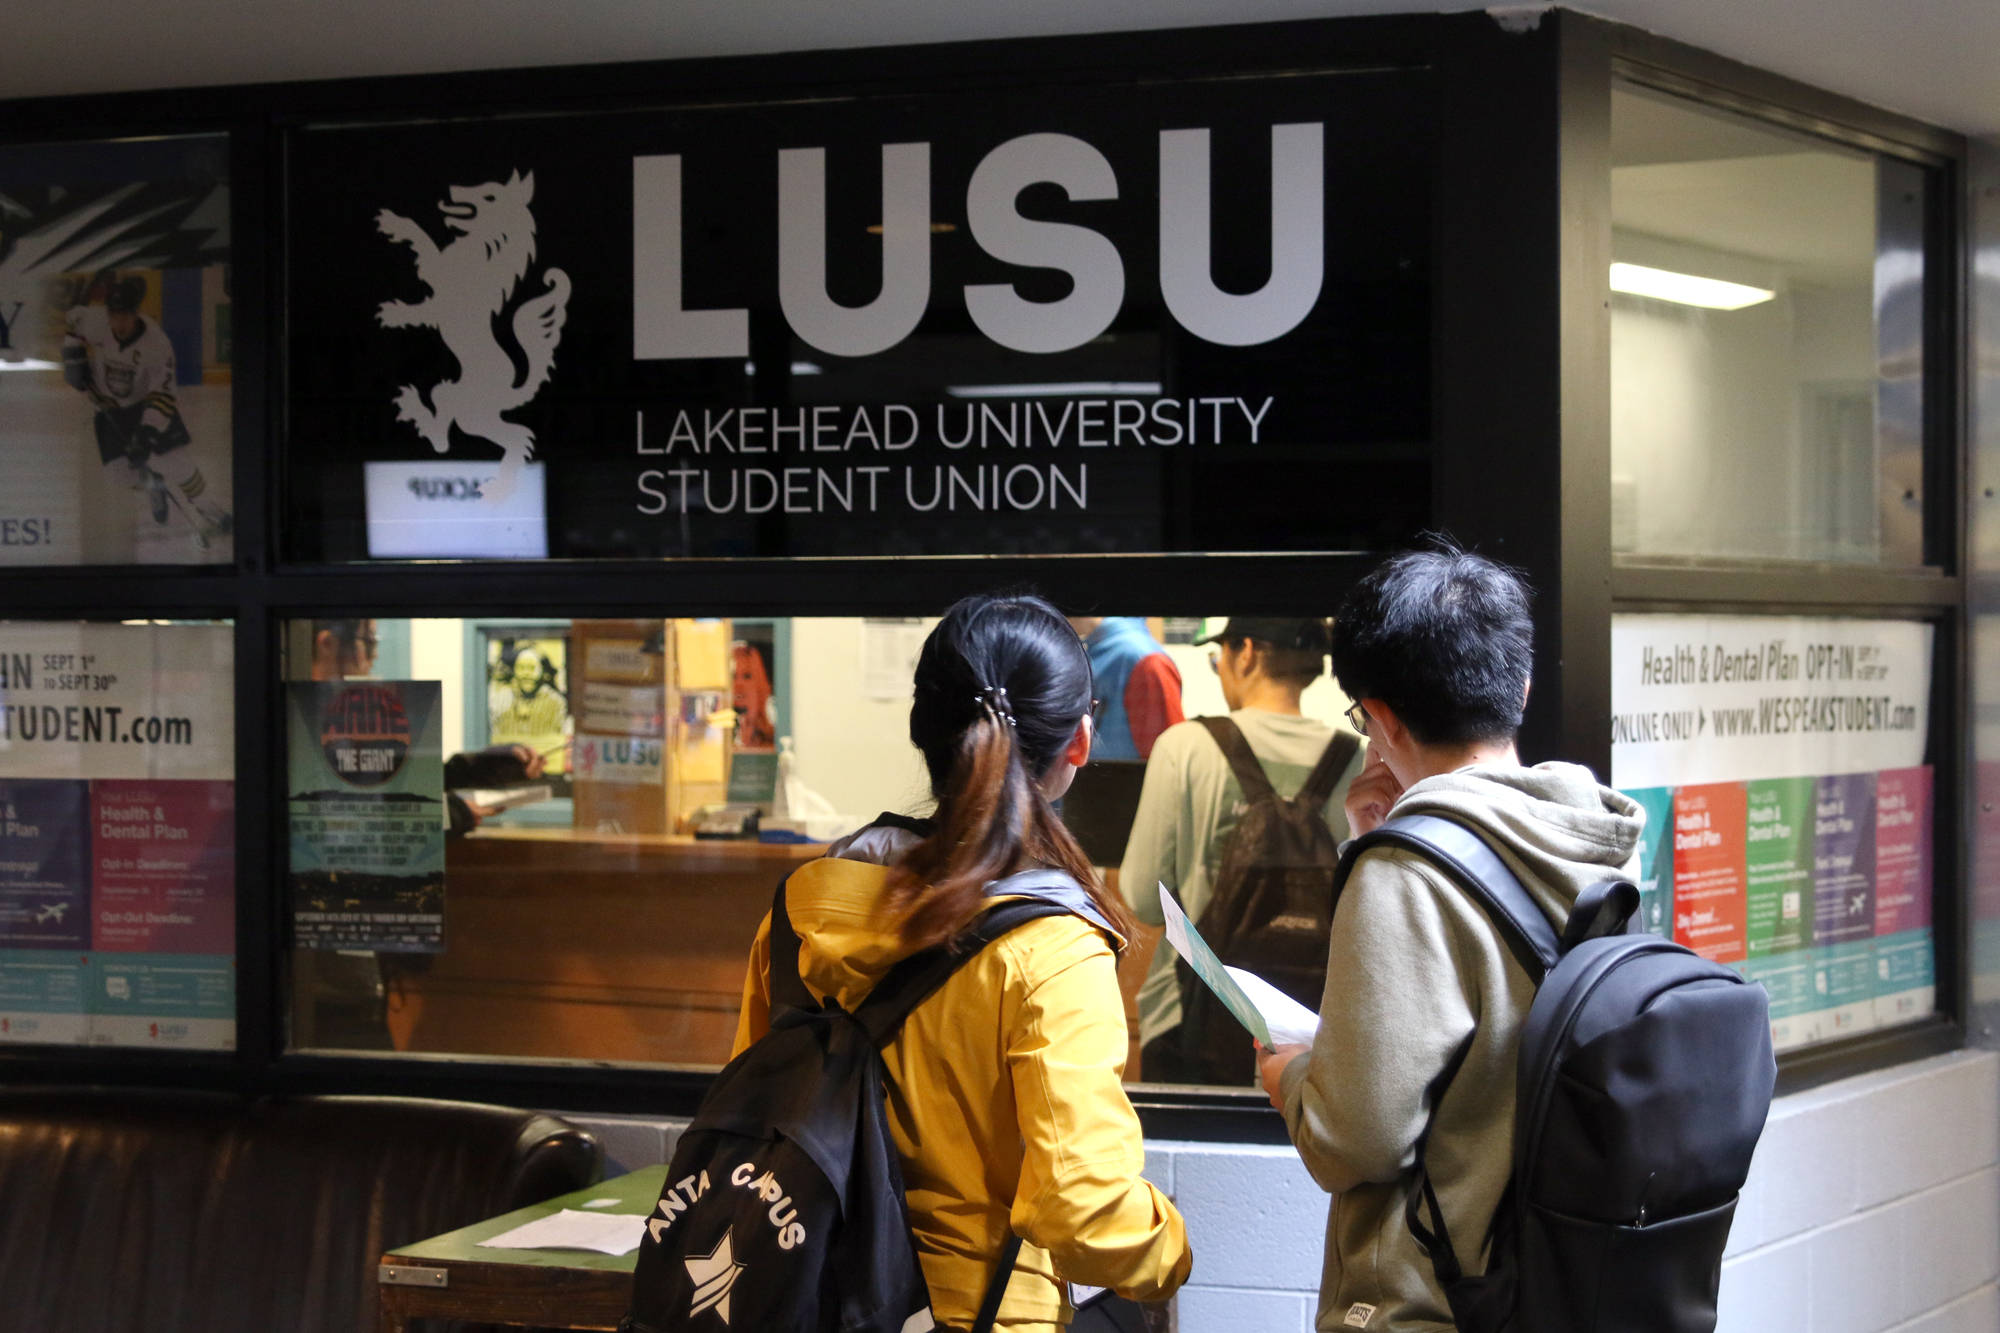 LUSU hopeful students chose to opt-in to pay fees